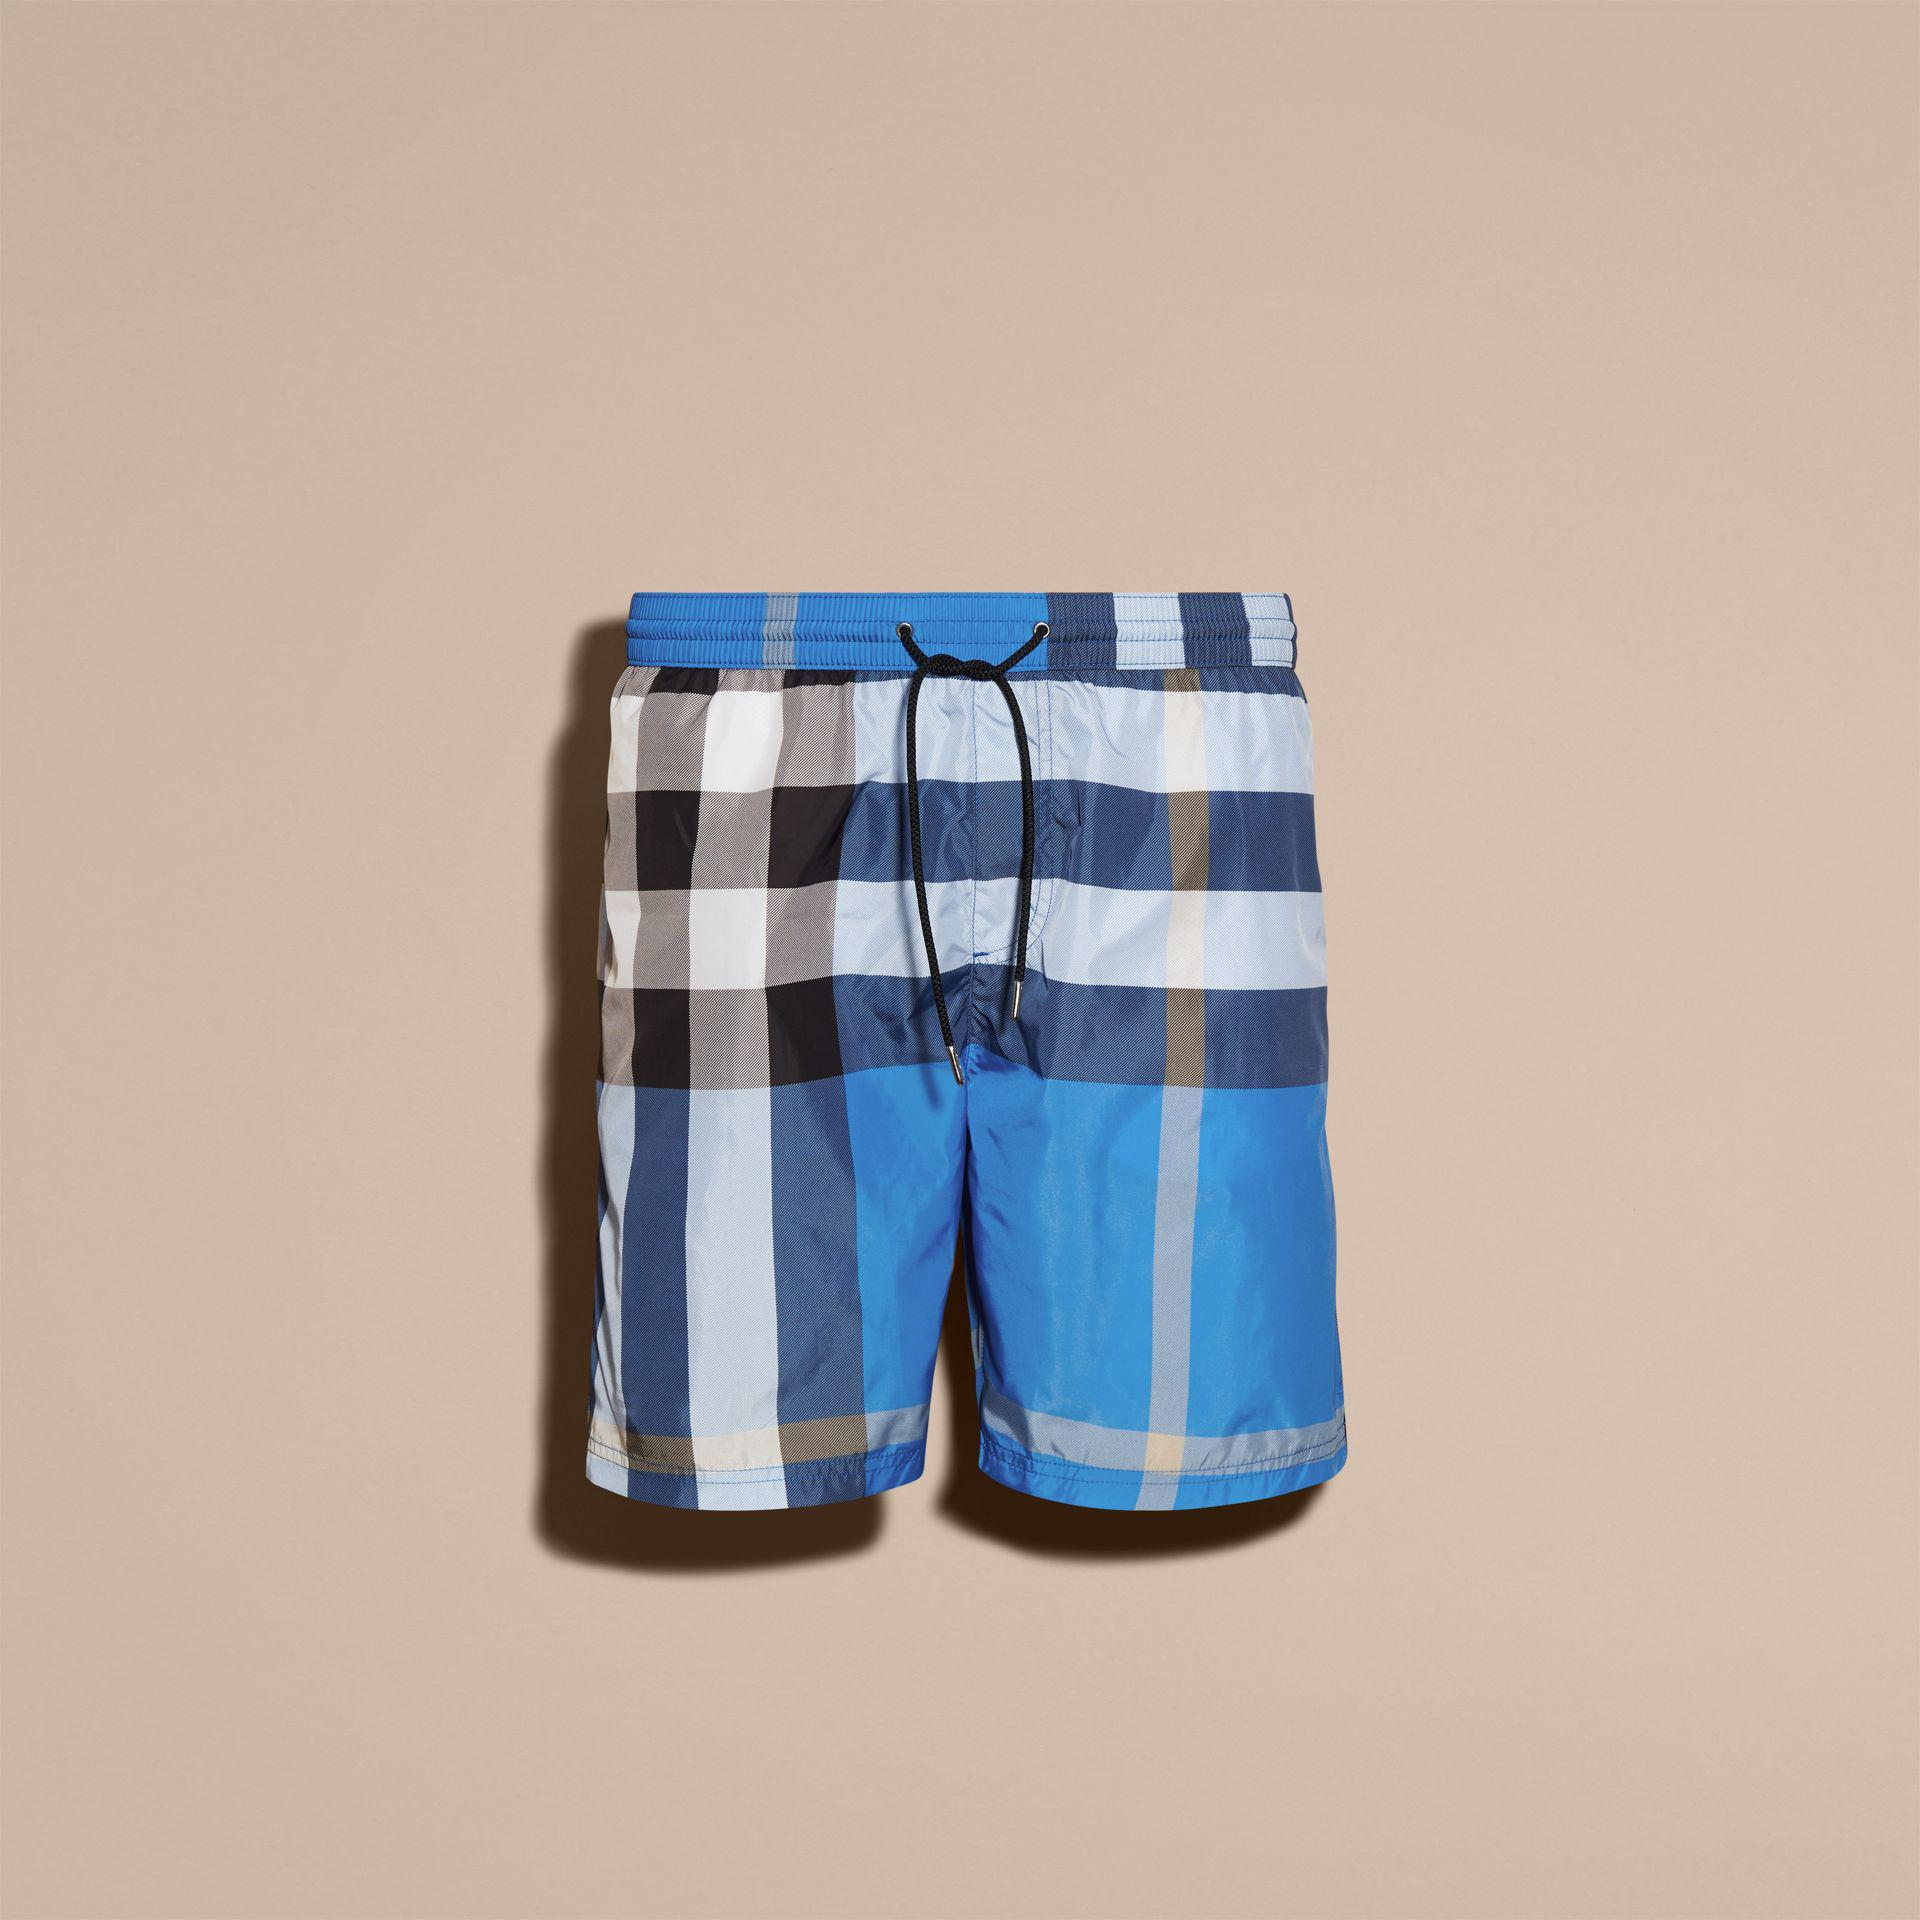 60f7158407e46 Burberry Check Swim Shorts Cerulean Blue in Blue for Men - Lyst